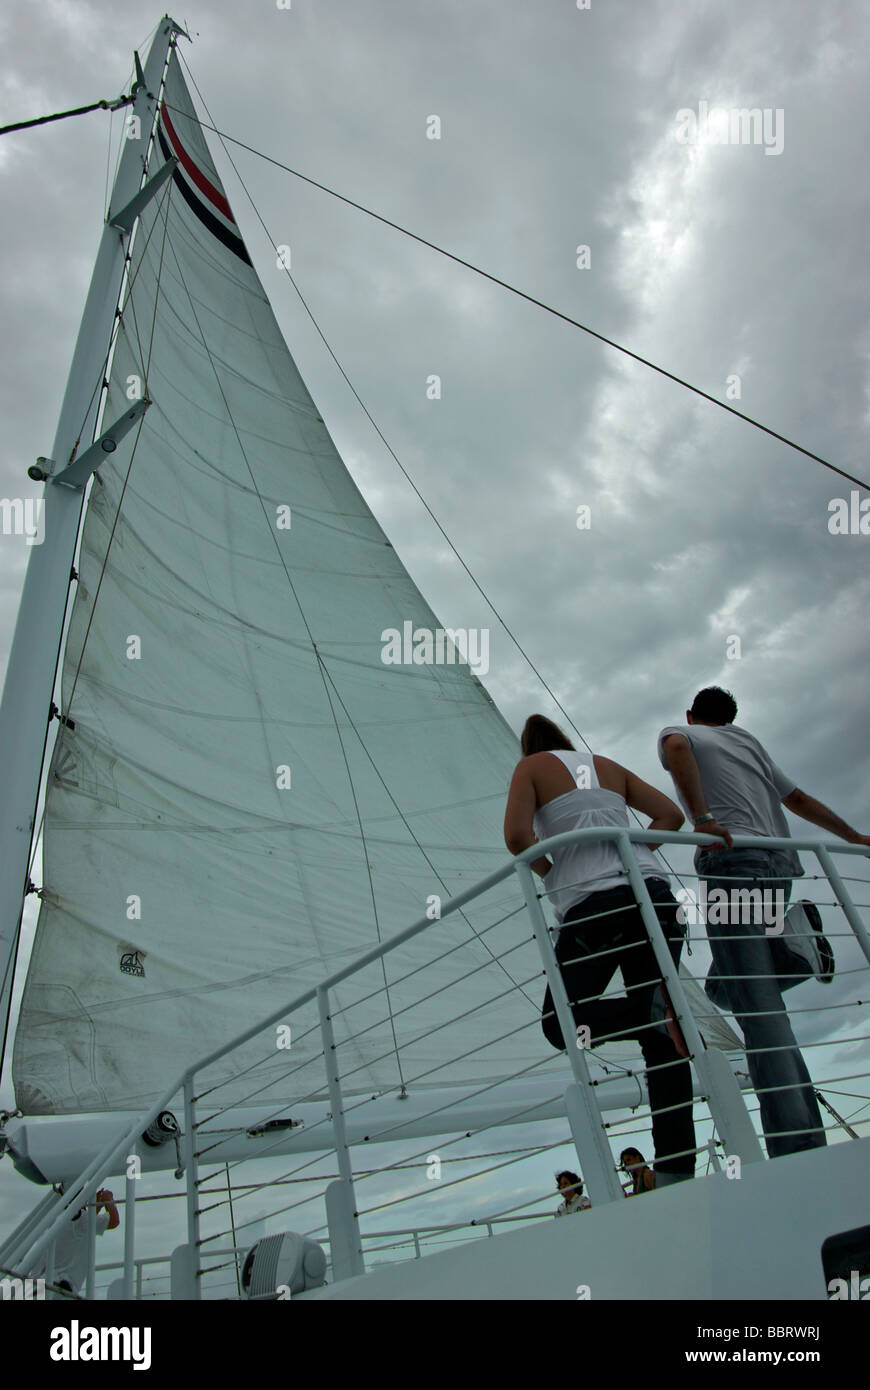 Couple leaning against catamaran charterboat top deck railing looking at mainsail against backdrop of storm clouds - Stock Image